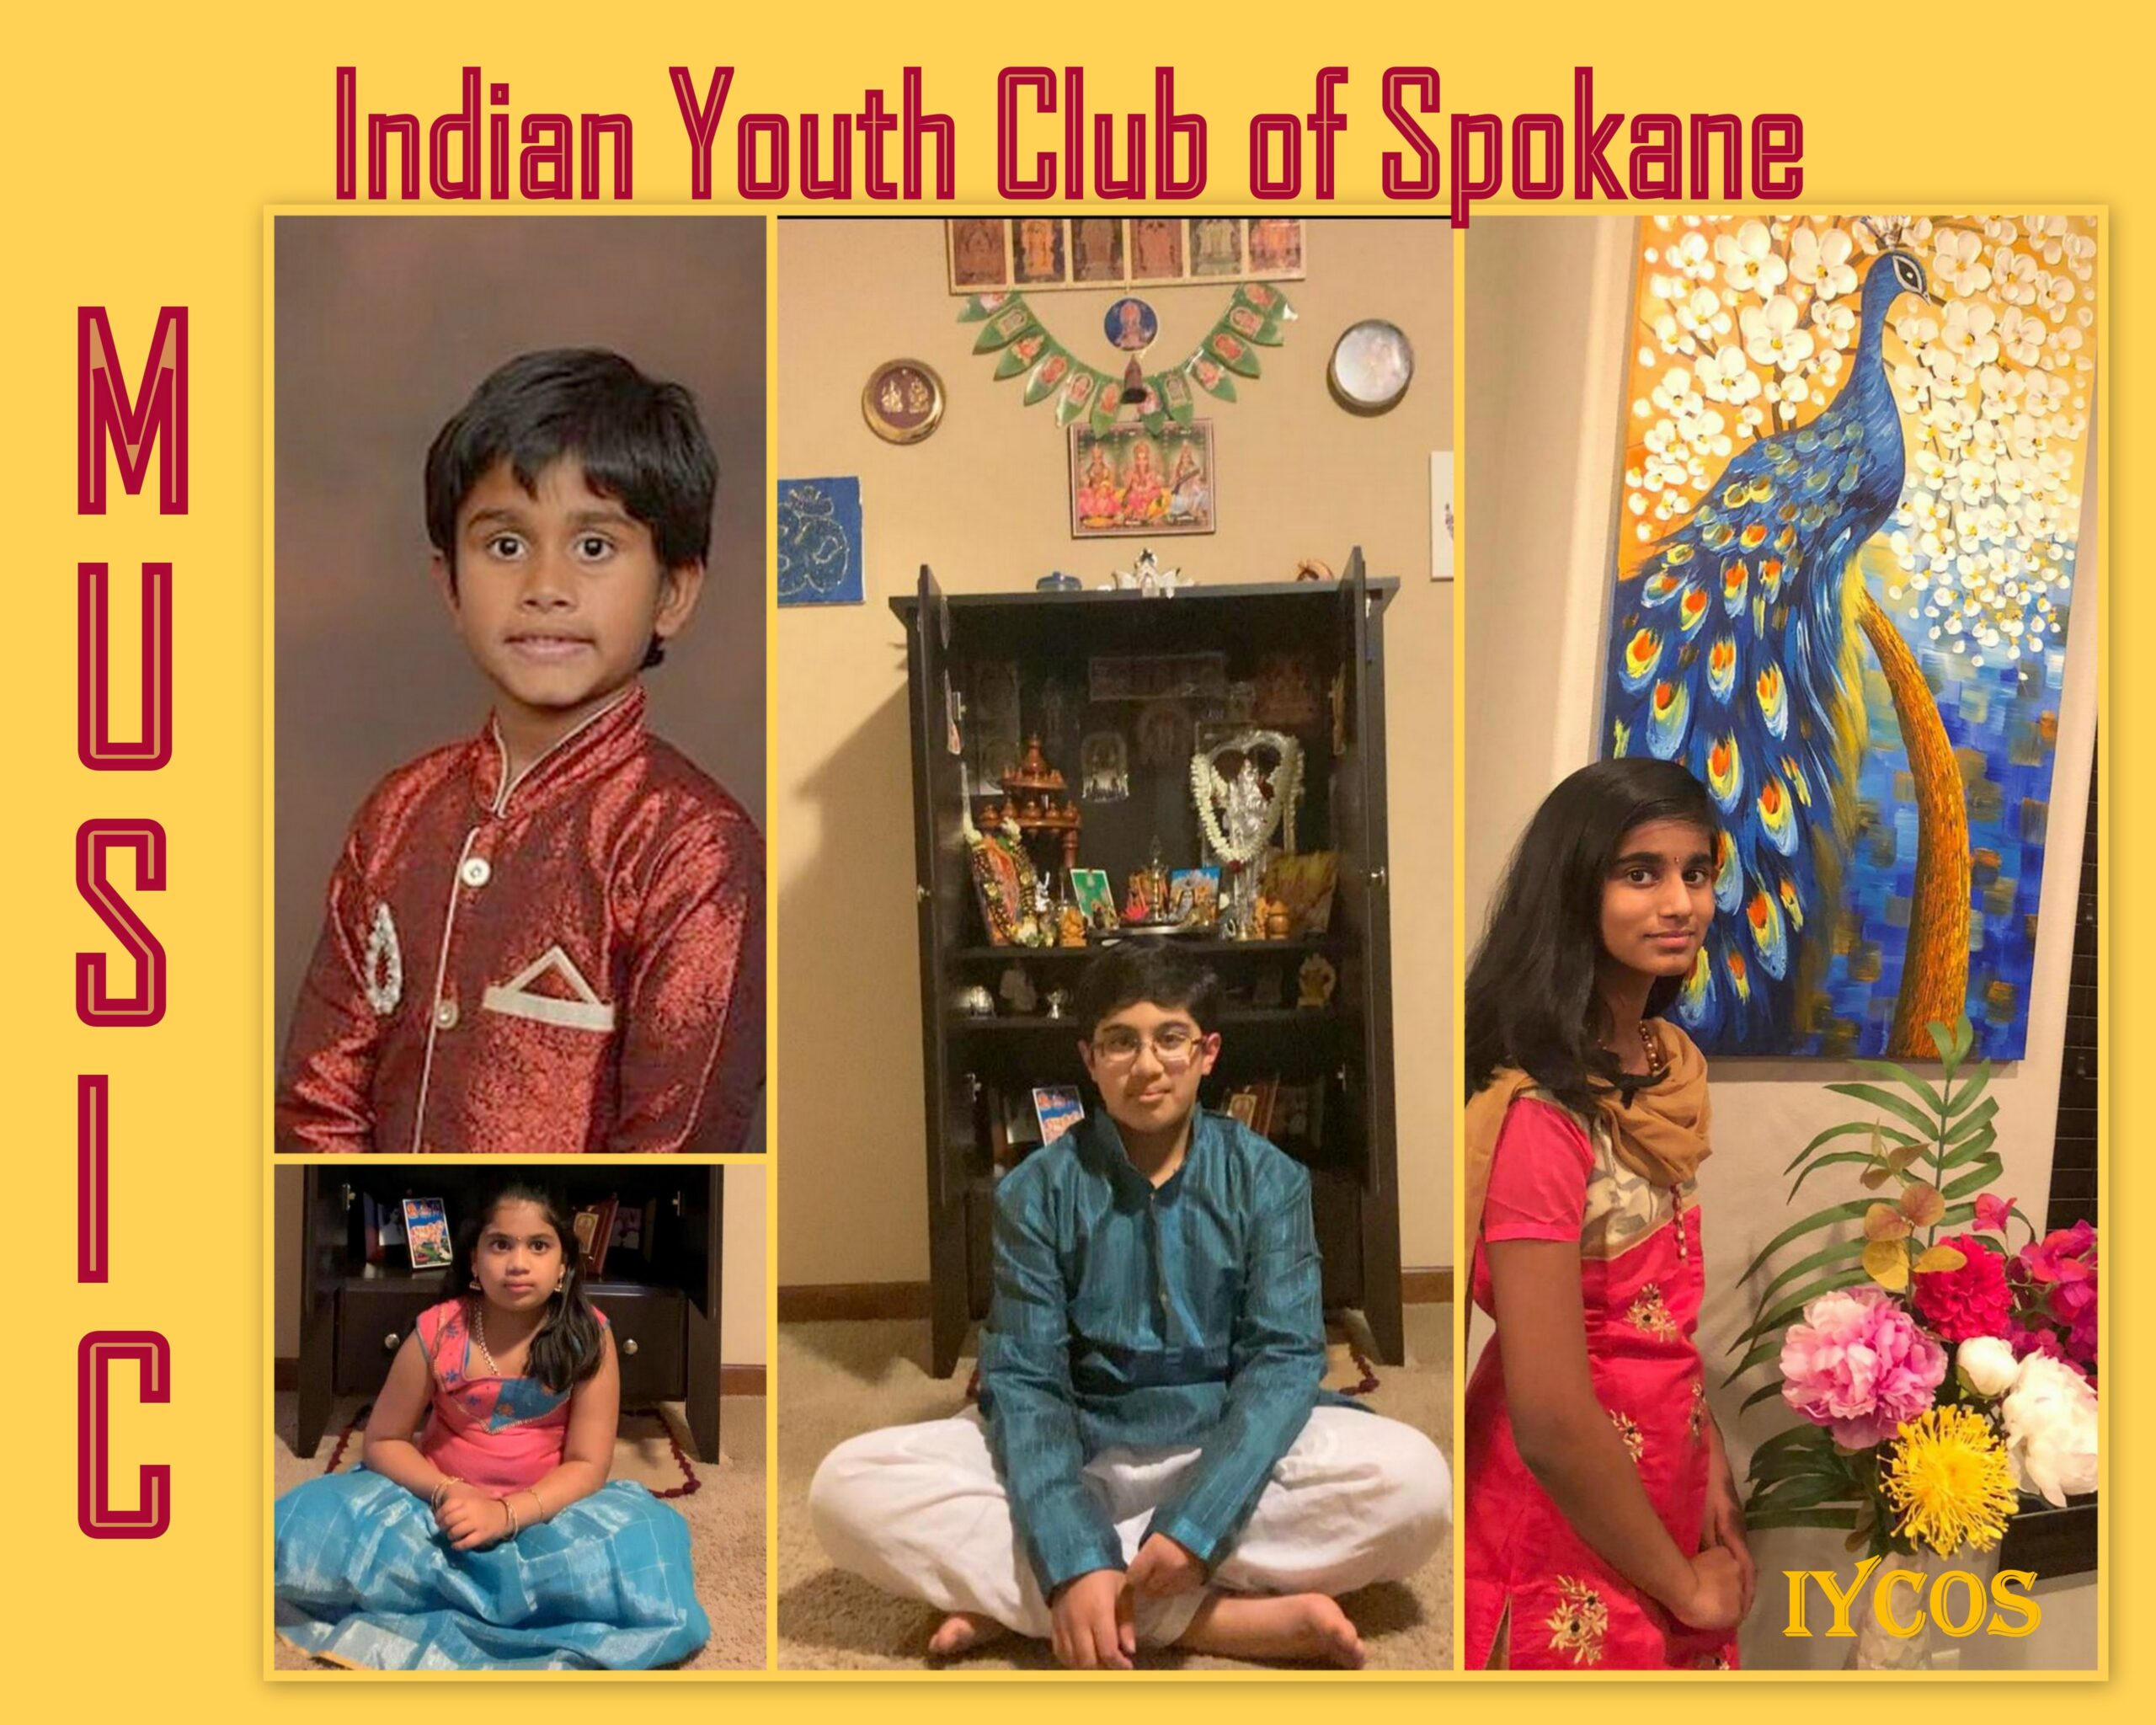 Indian Youth Club